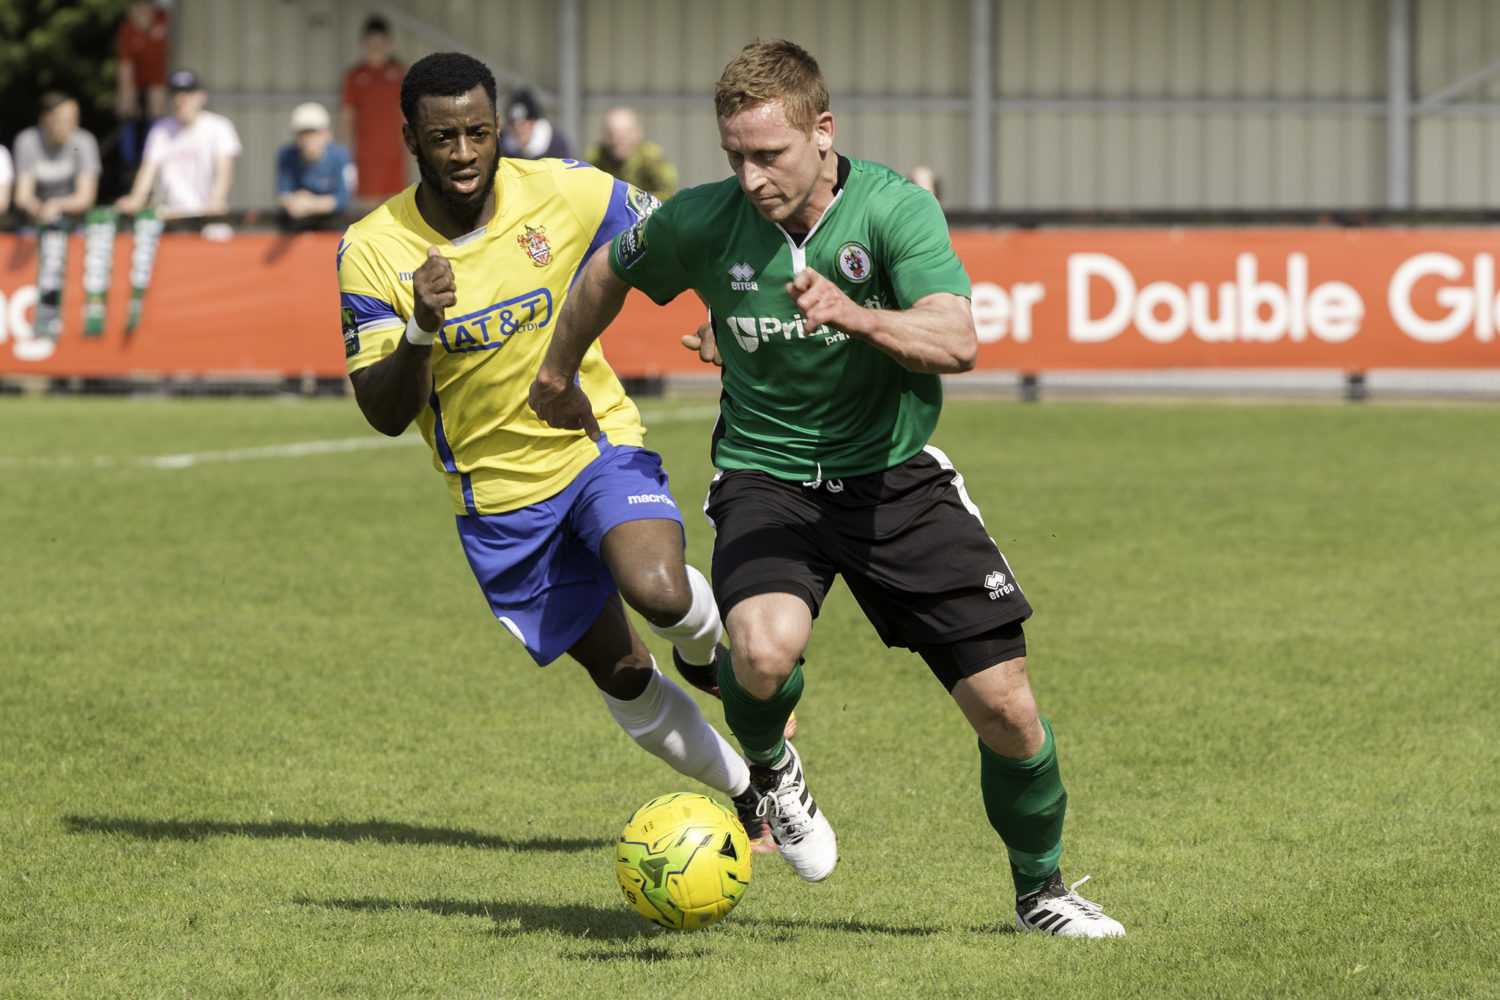 Highlights: BHTFC 1 Staines Town 1